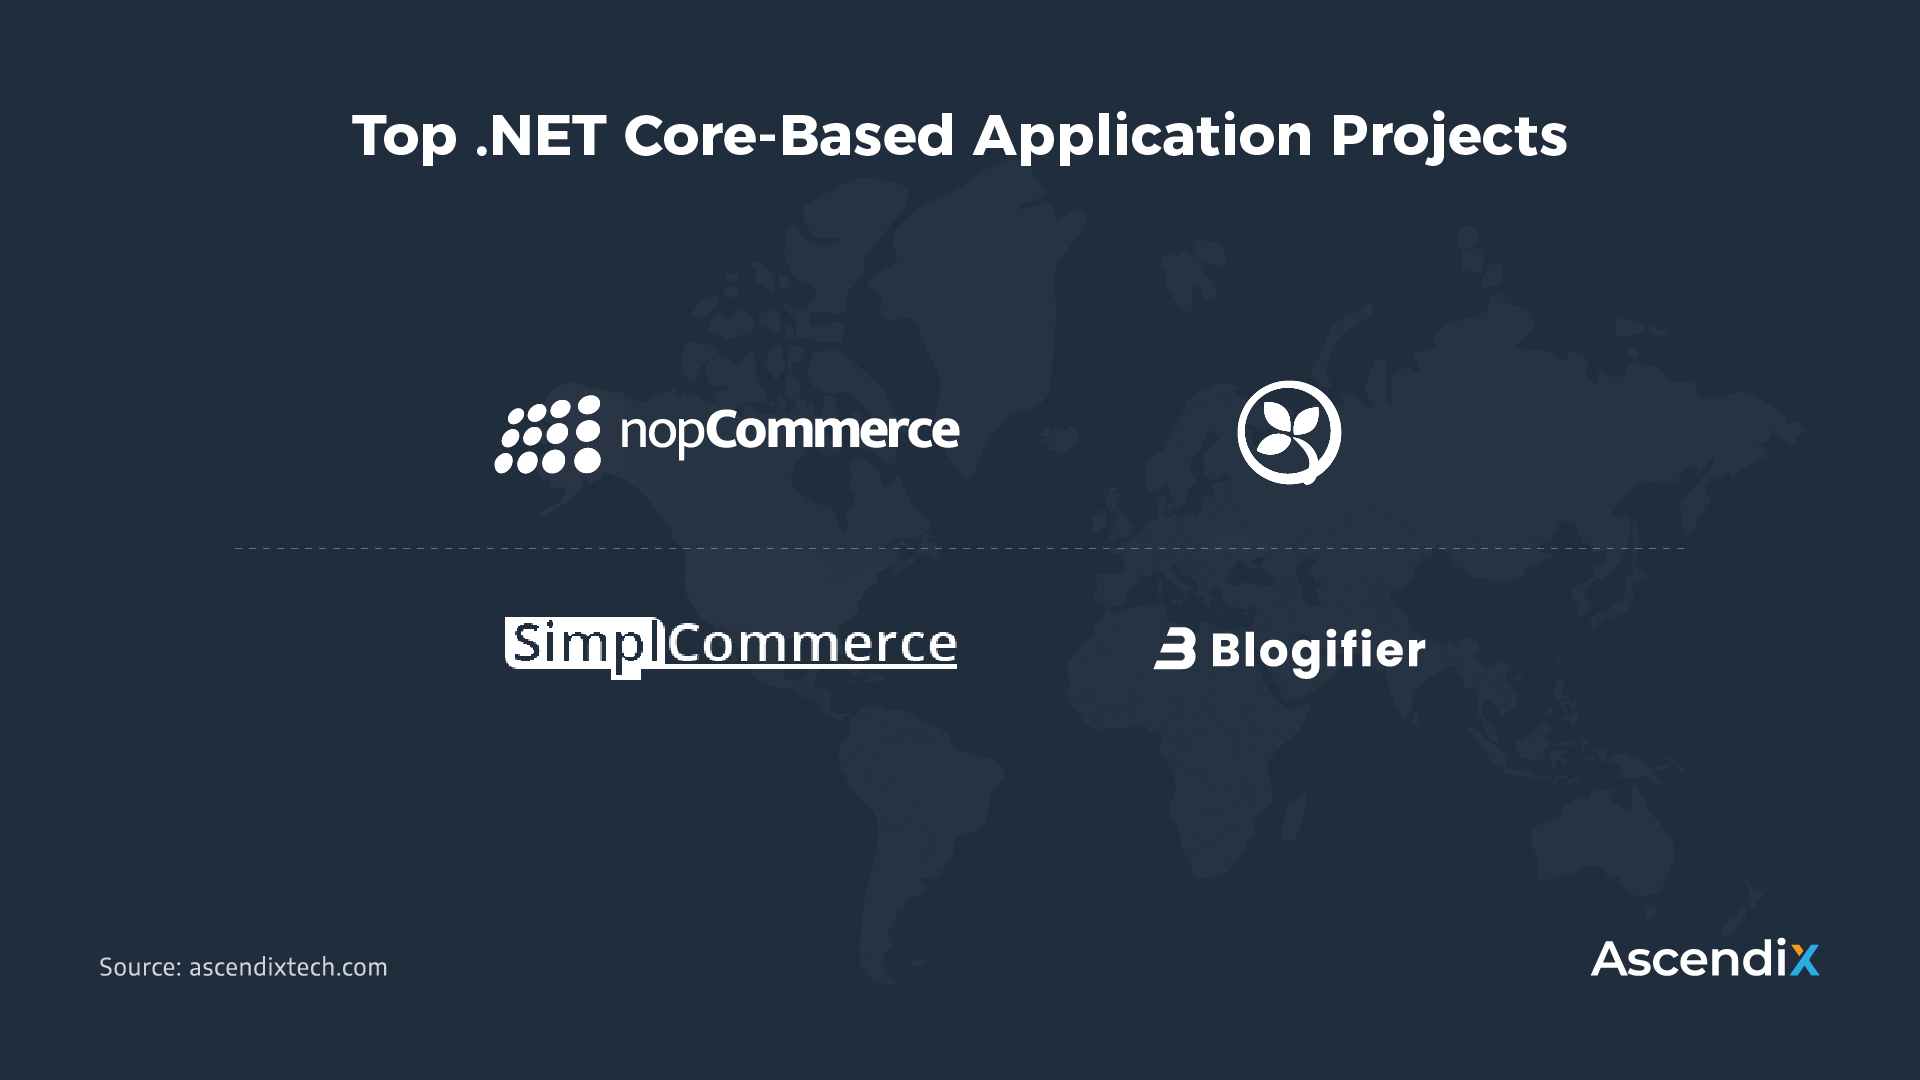 Top .NET Core-Based Application Projects